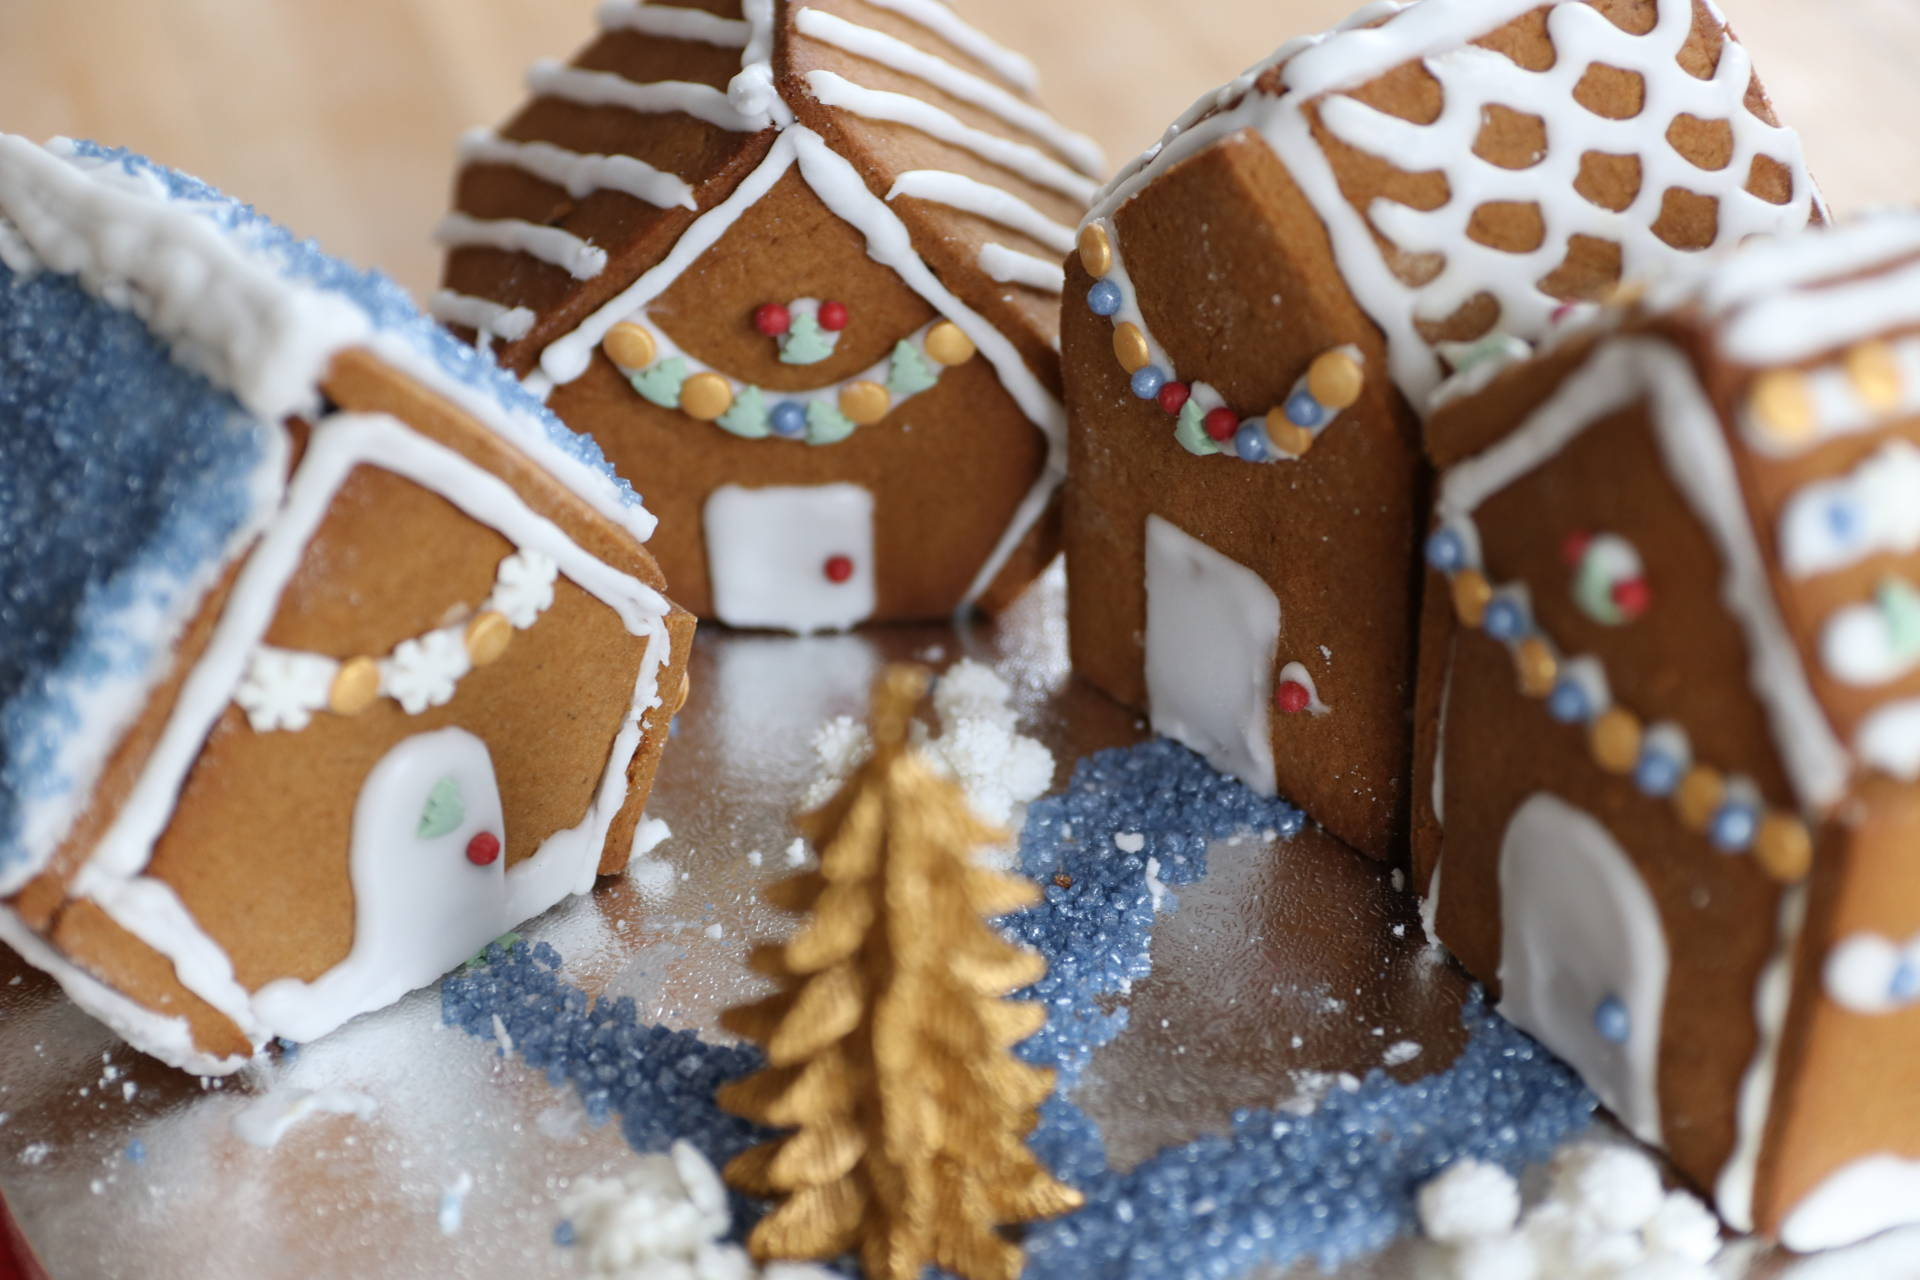 RECIPE: Mini Gluten Free Gingerbread Houses (Dairy Free)